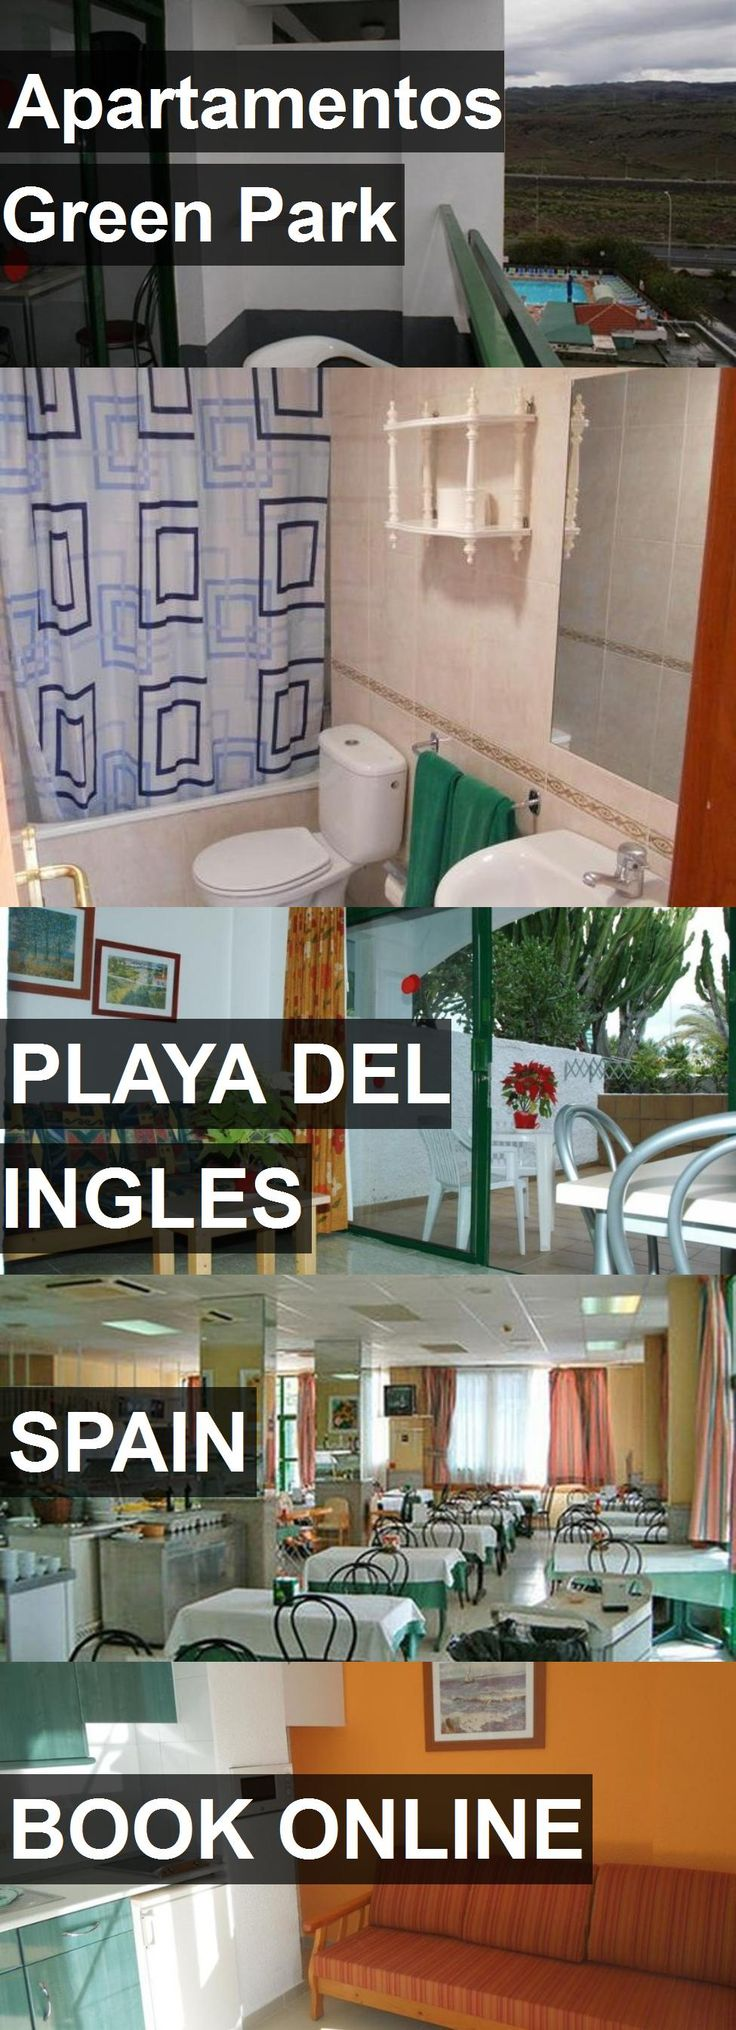 Hotel Apartamentos Green Park in Playa del Ingles, Spain. For more information, photos, reviews and best prices please follow the link. #Spain #PlayadelIngles #travel #vacation #hotel